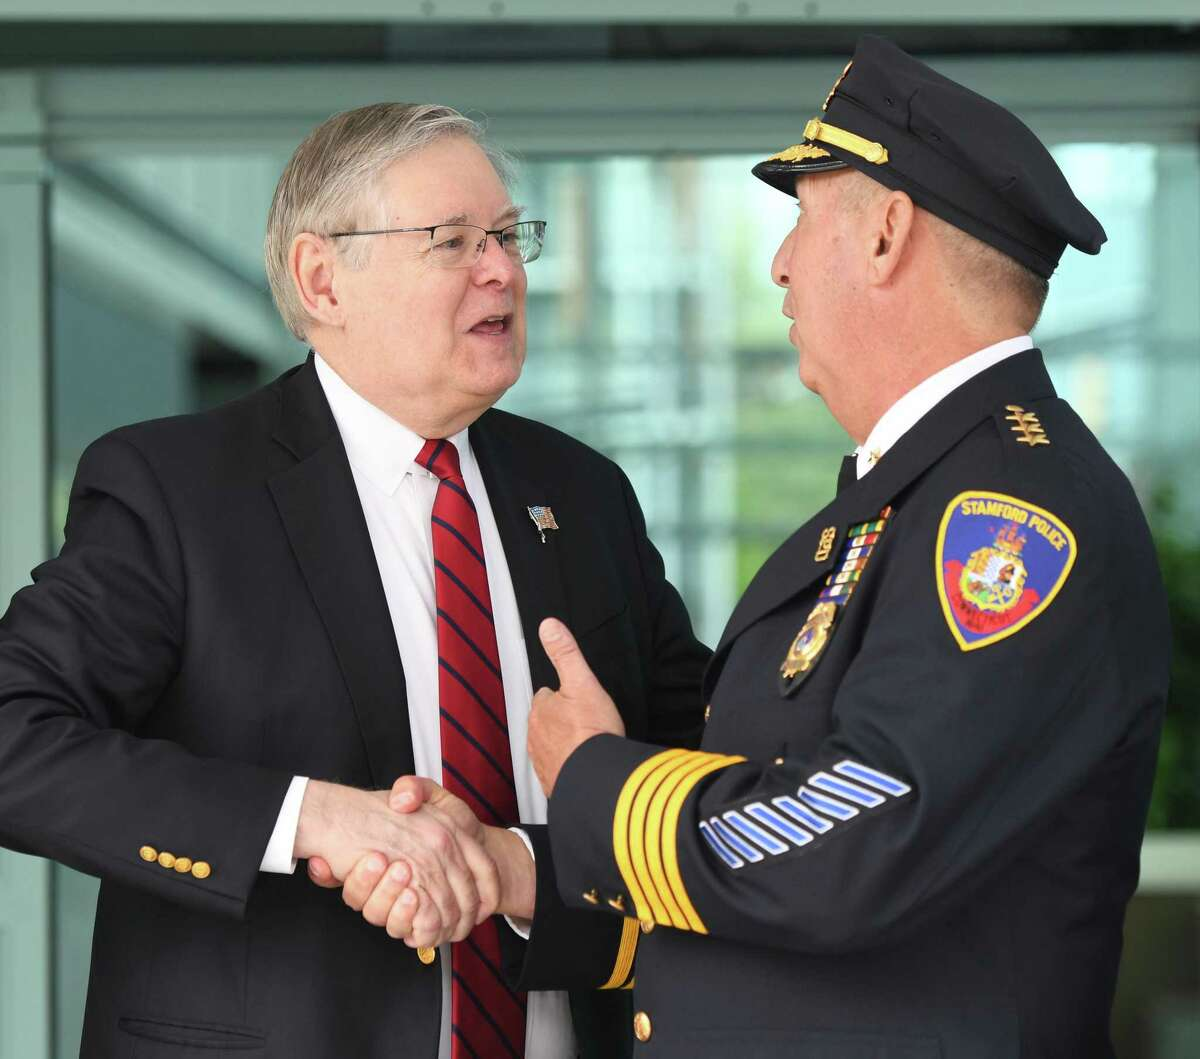 Stamford Mayor David Martin, left, shakes hands with Police Chief Jonathan Fontneau in this undated file photo.